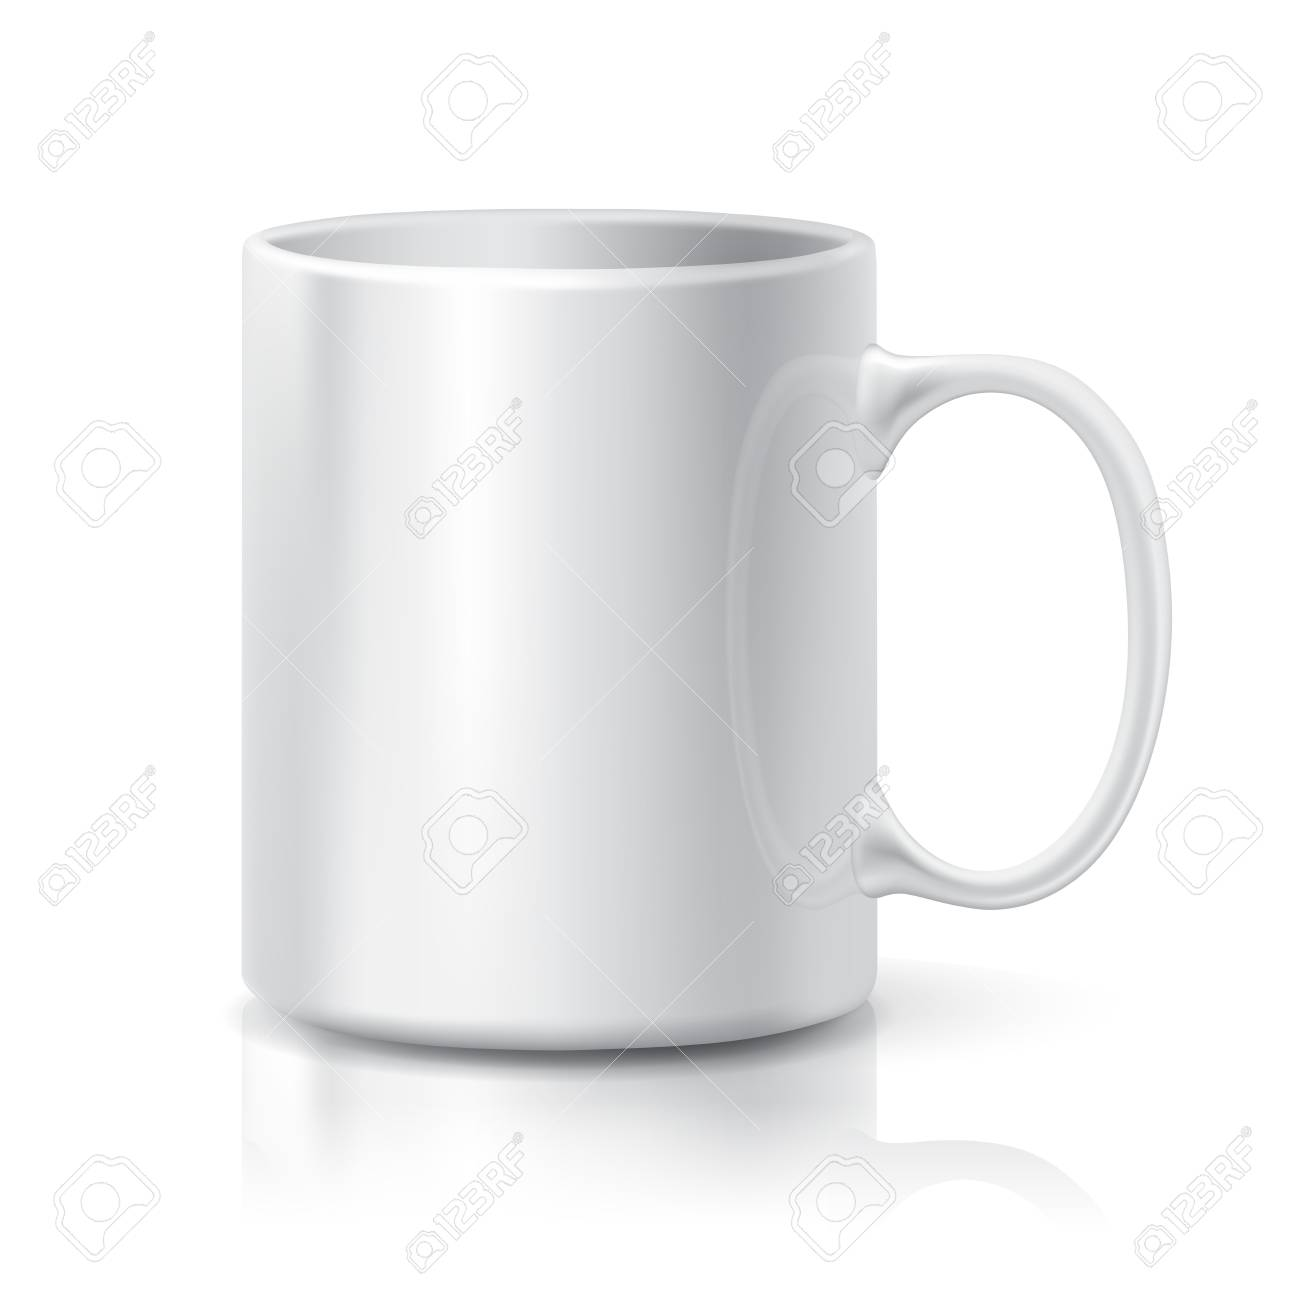 Realistic white coffee or tea cup isolated on white background realistic white coffee or tea cup isolated on white background design template for mock up maxwellsz